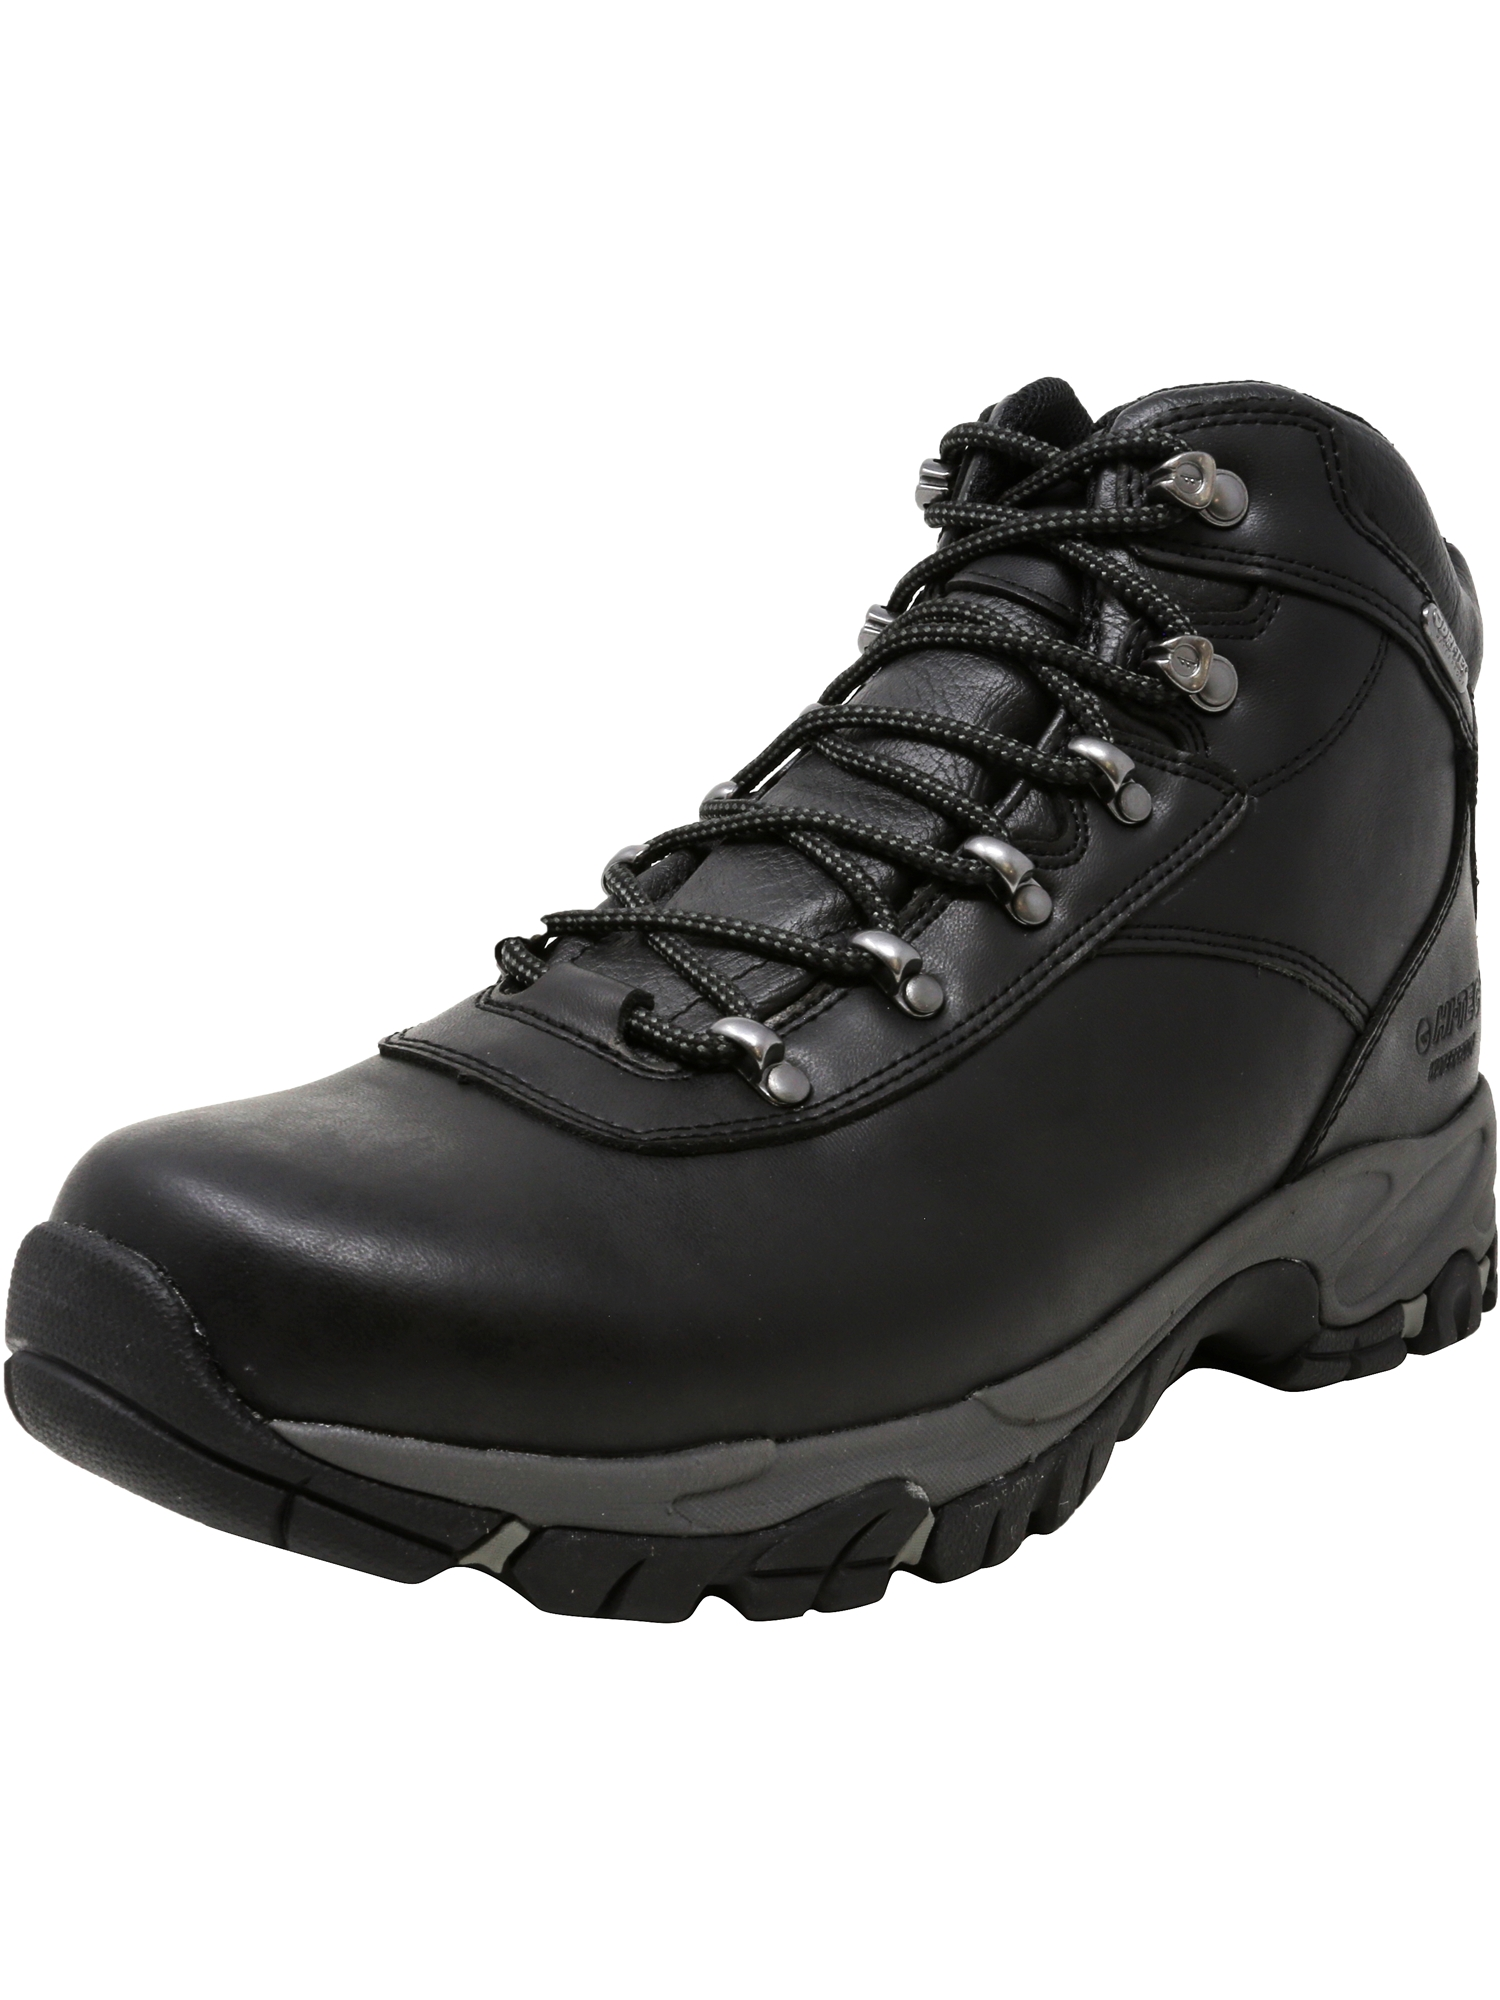 Hi-Tec Men's Altitude V I Waterproof Black   Charcoal High-Top Leather Hiking Boot 8.5W by Hi-Tec